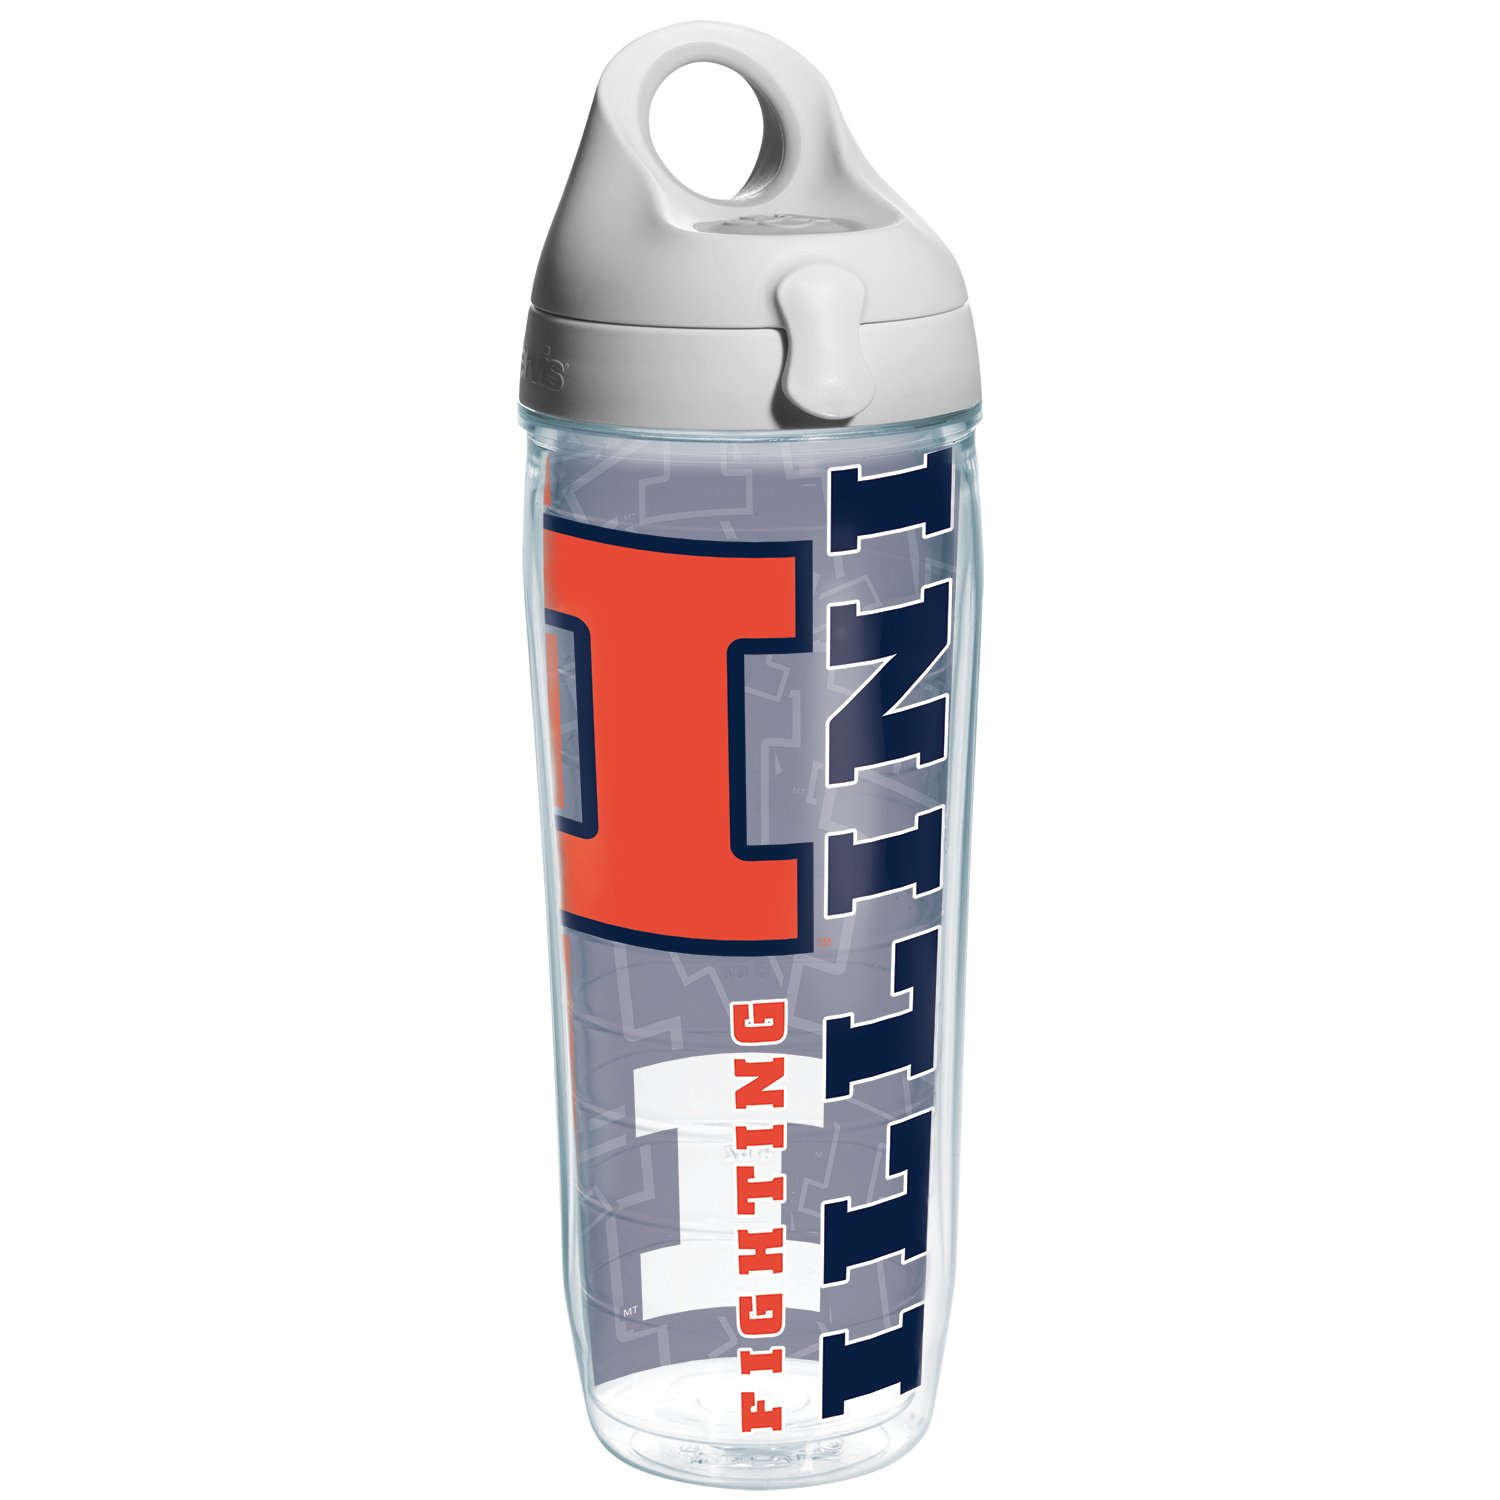 Tervis Illinois University Of College Pride Water Bottle with Grey Lid, 24 oz, Clear